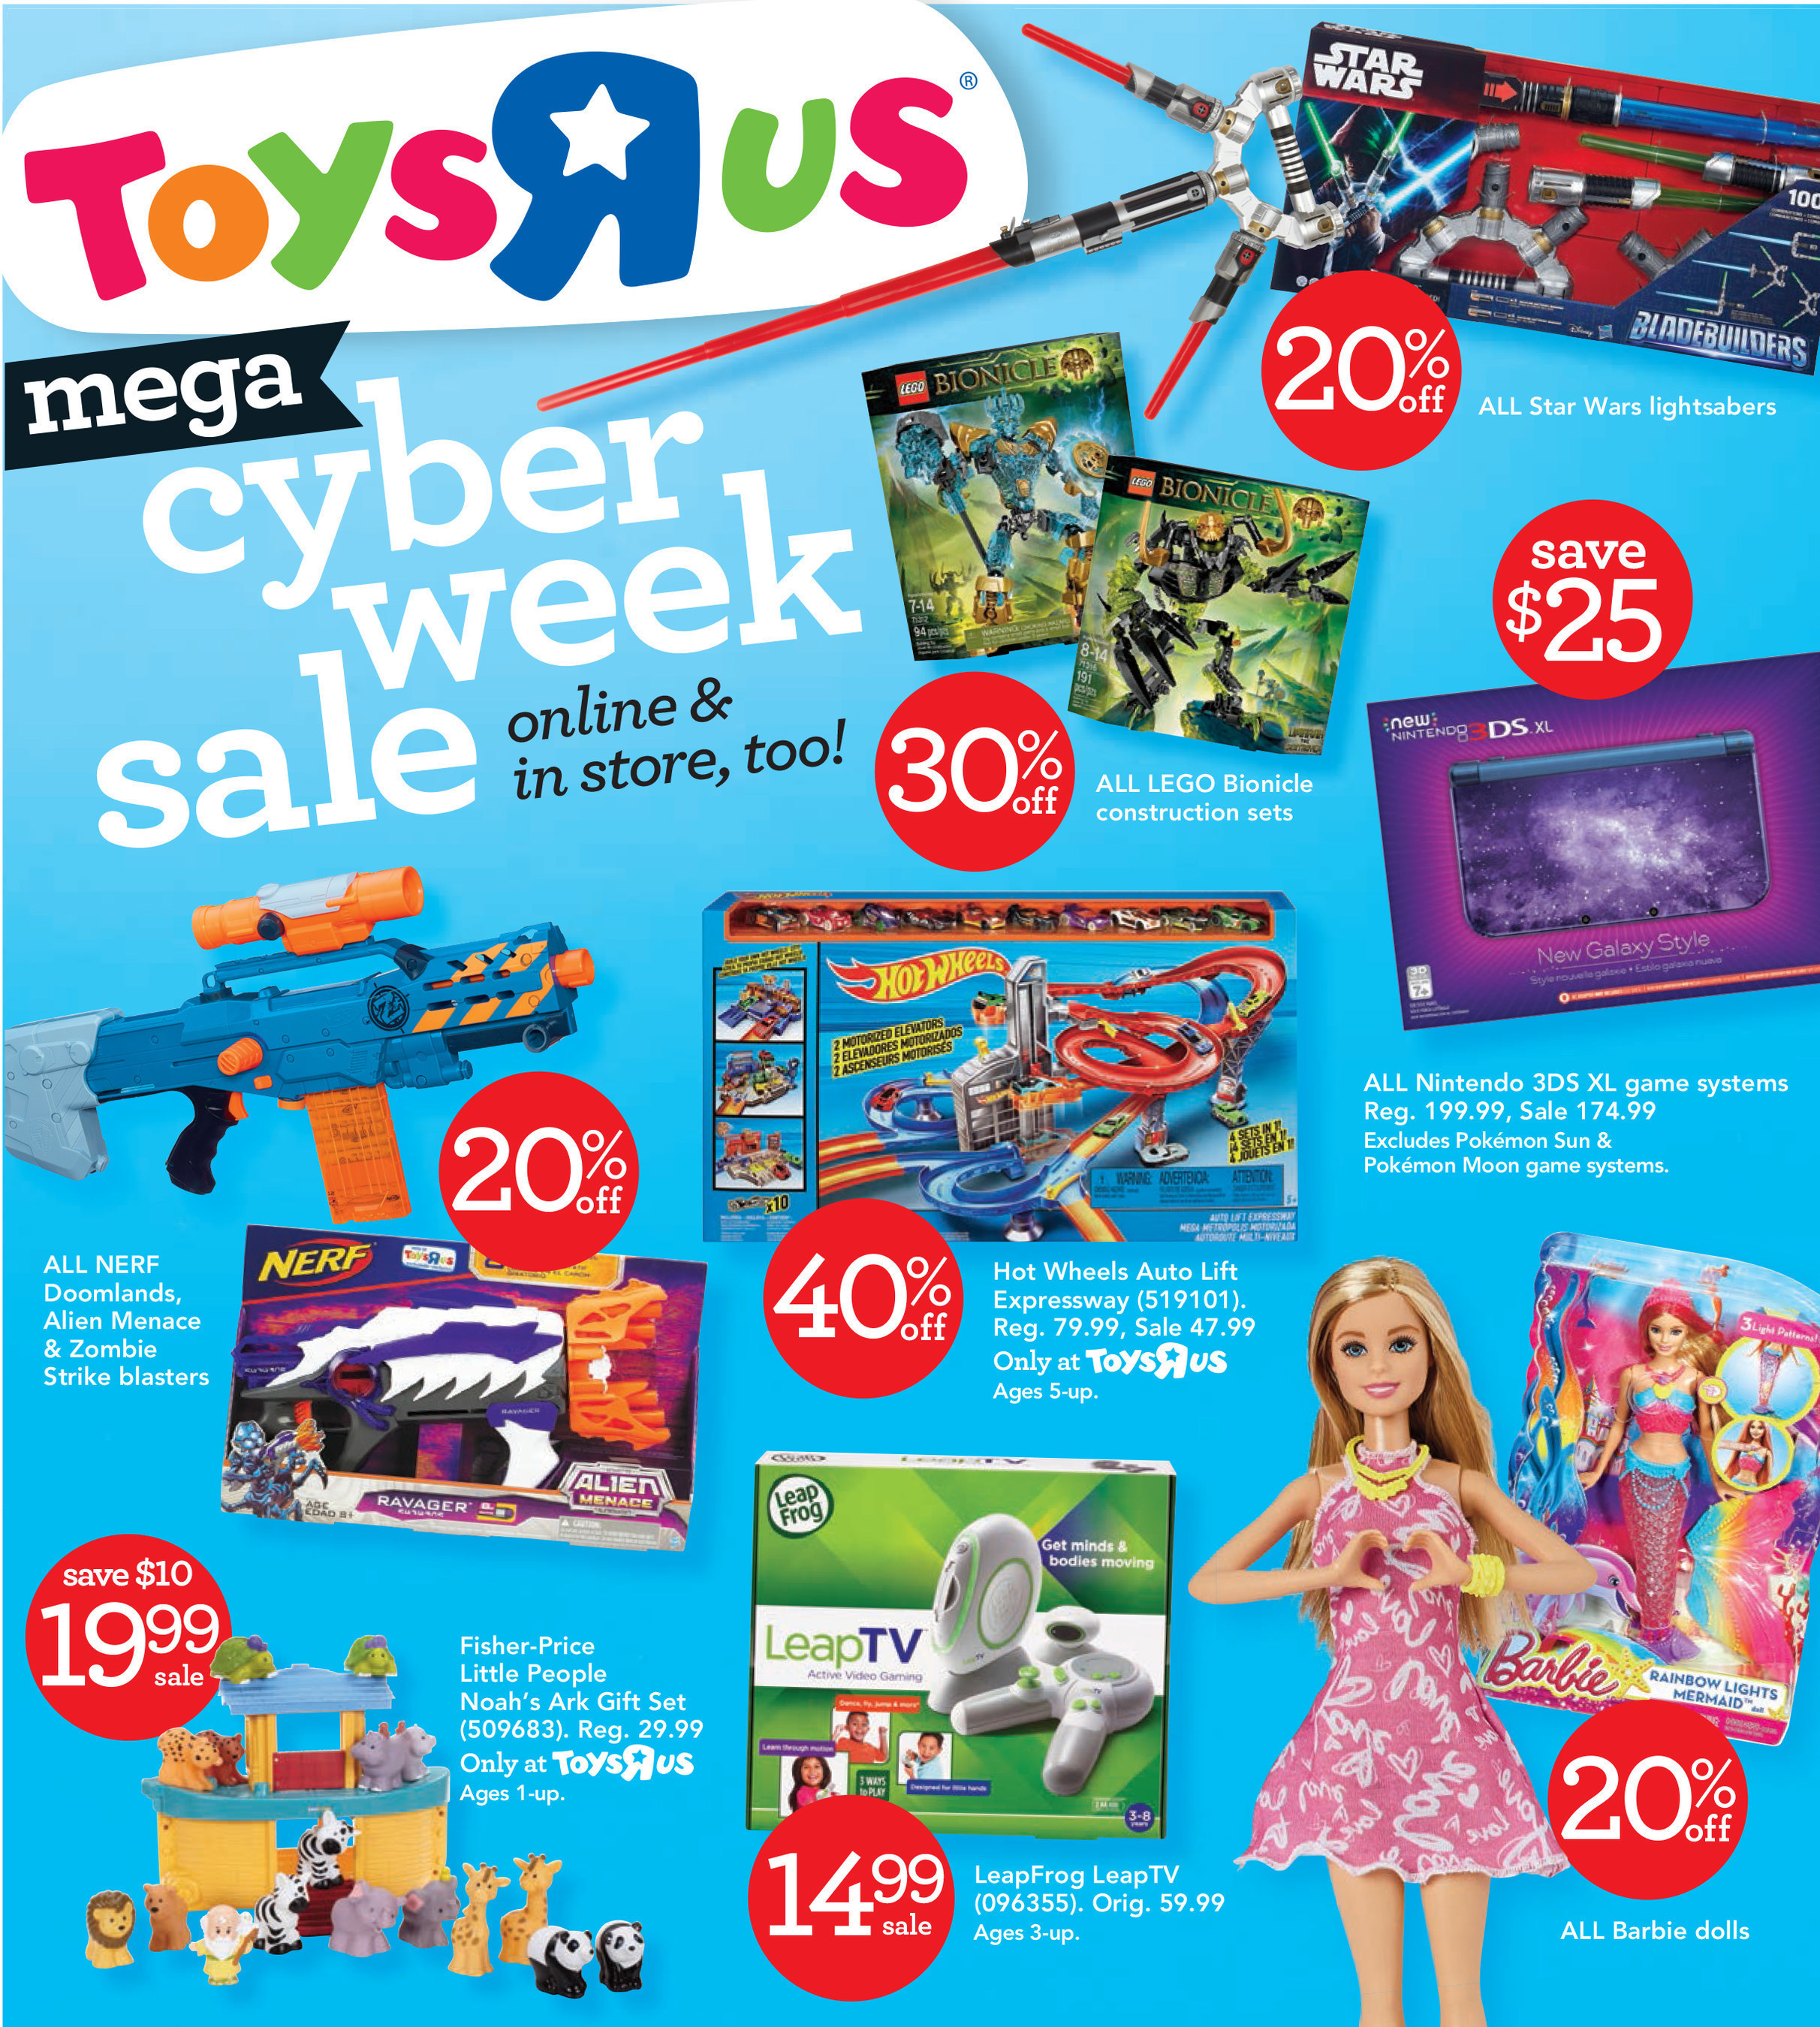 Toys That Start With B : Toys r us to start its cyber week on saturday